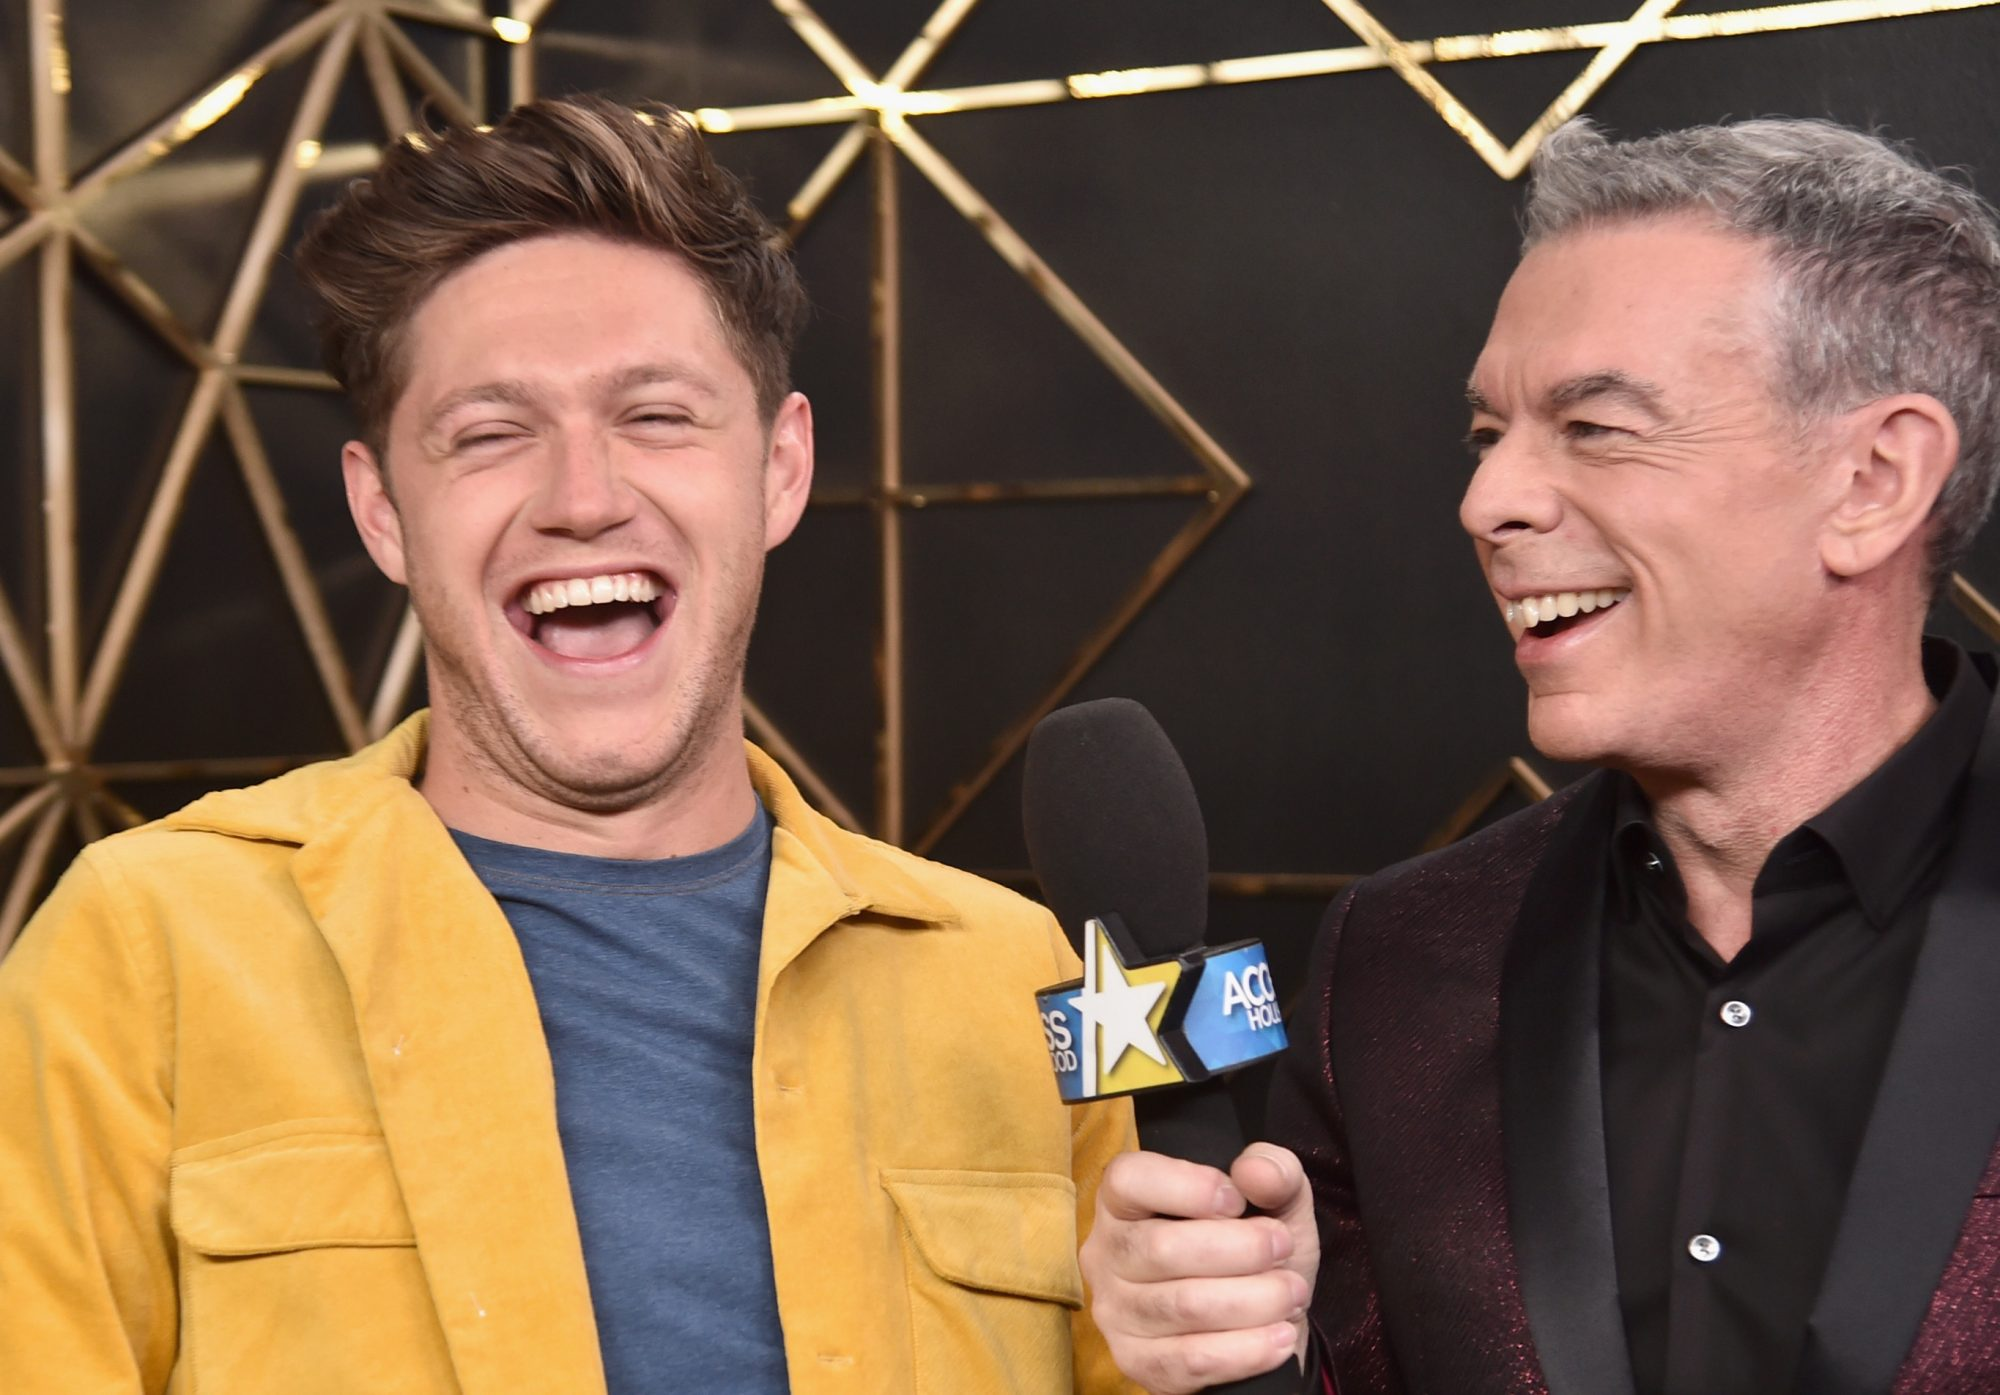 INGLEWOOD, CA - DECEMBER 01:  (EDITORIAL USE ONLY. NO COMMERCIAL USE) Niall Horan (L) and Elvis Duran in the press room during 102.7 KIIS FM's Jingle Ball 2017 presented by Capital One at The Forum on December 1, 2017 in Inglewood, California.  (Photo by Alberto E. Rodriguez/Getty Images for iHeartMedia)